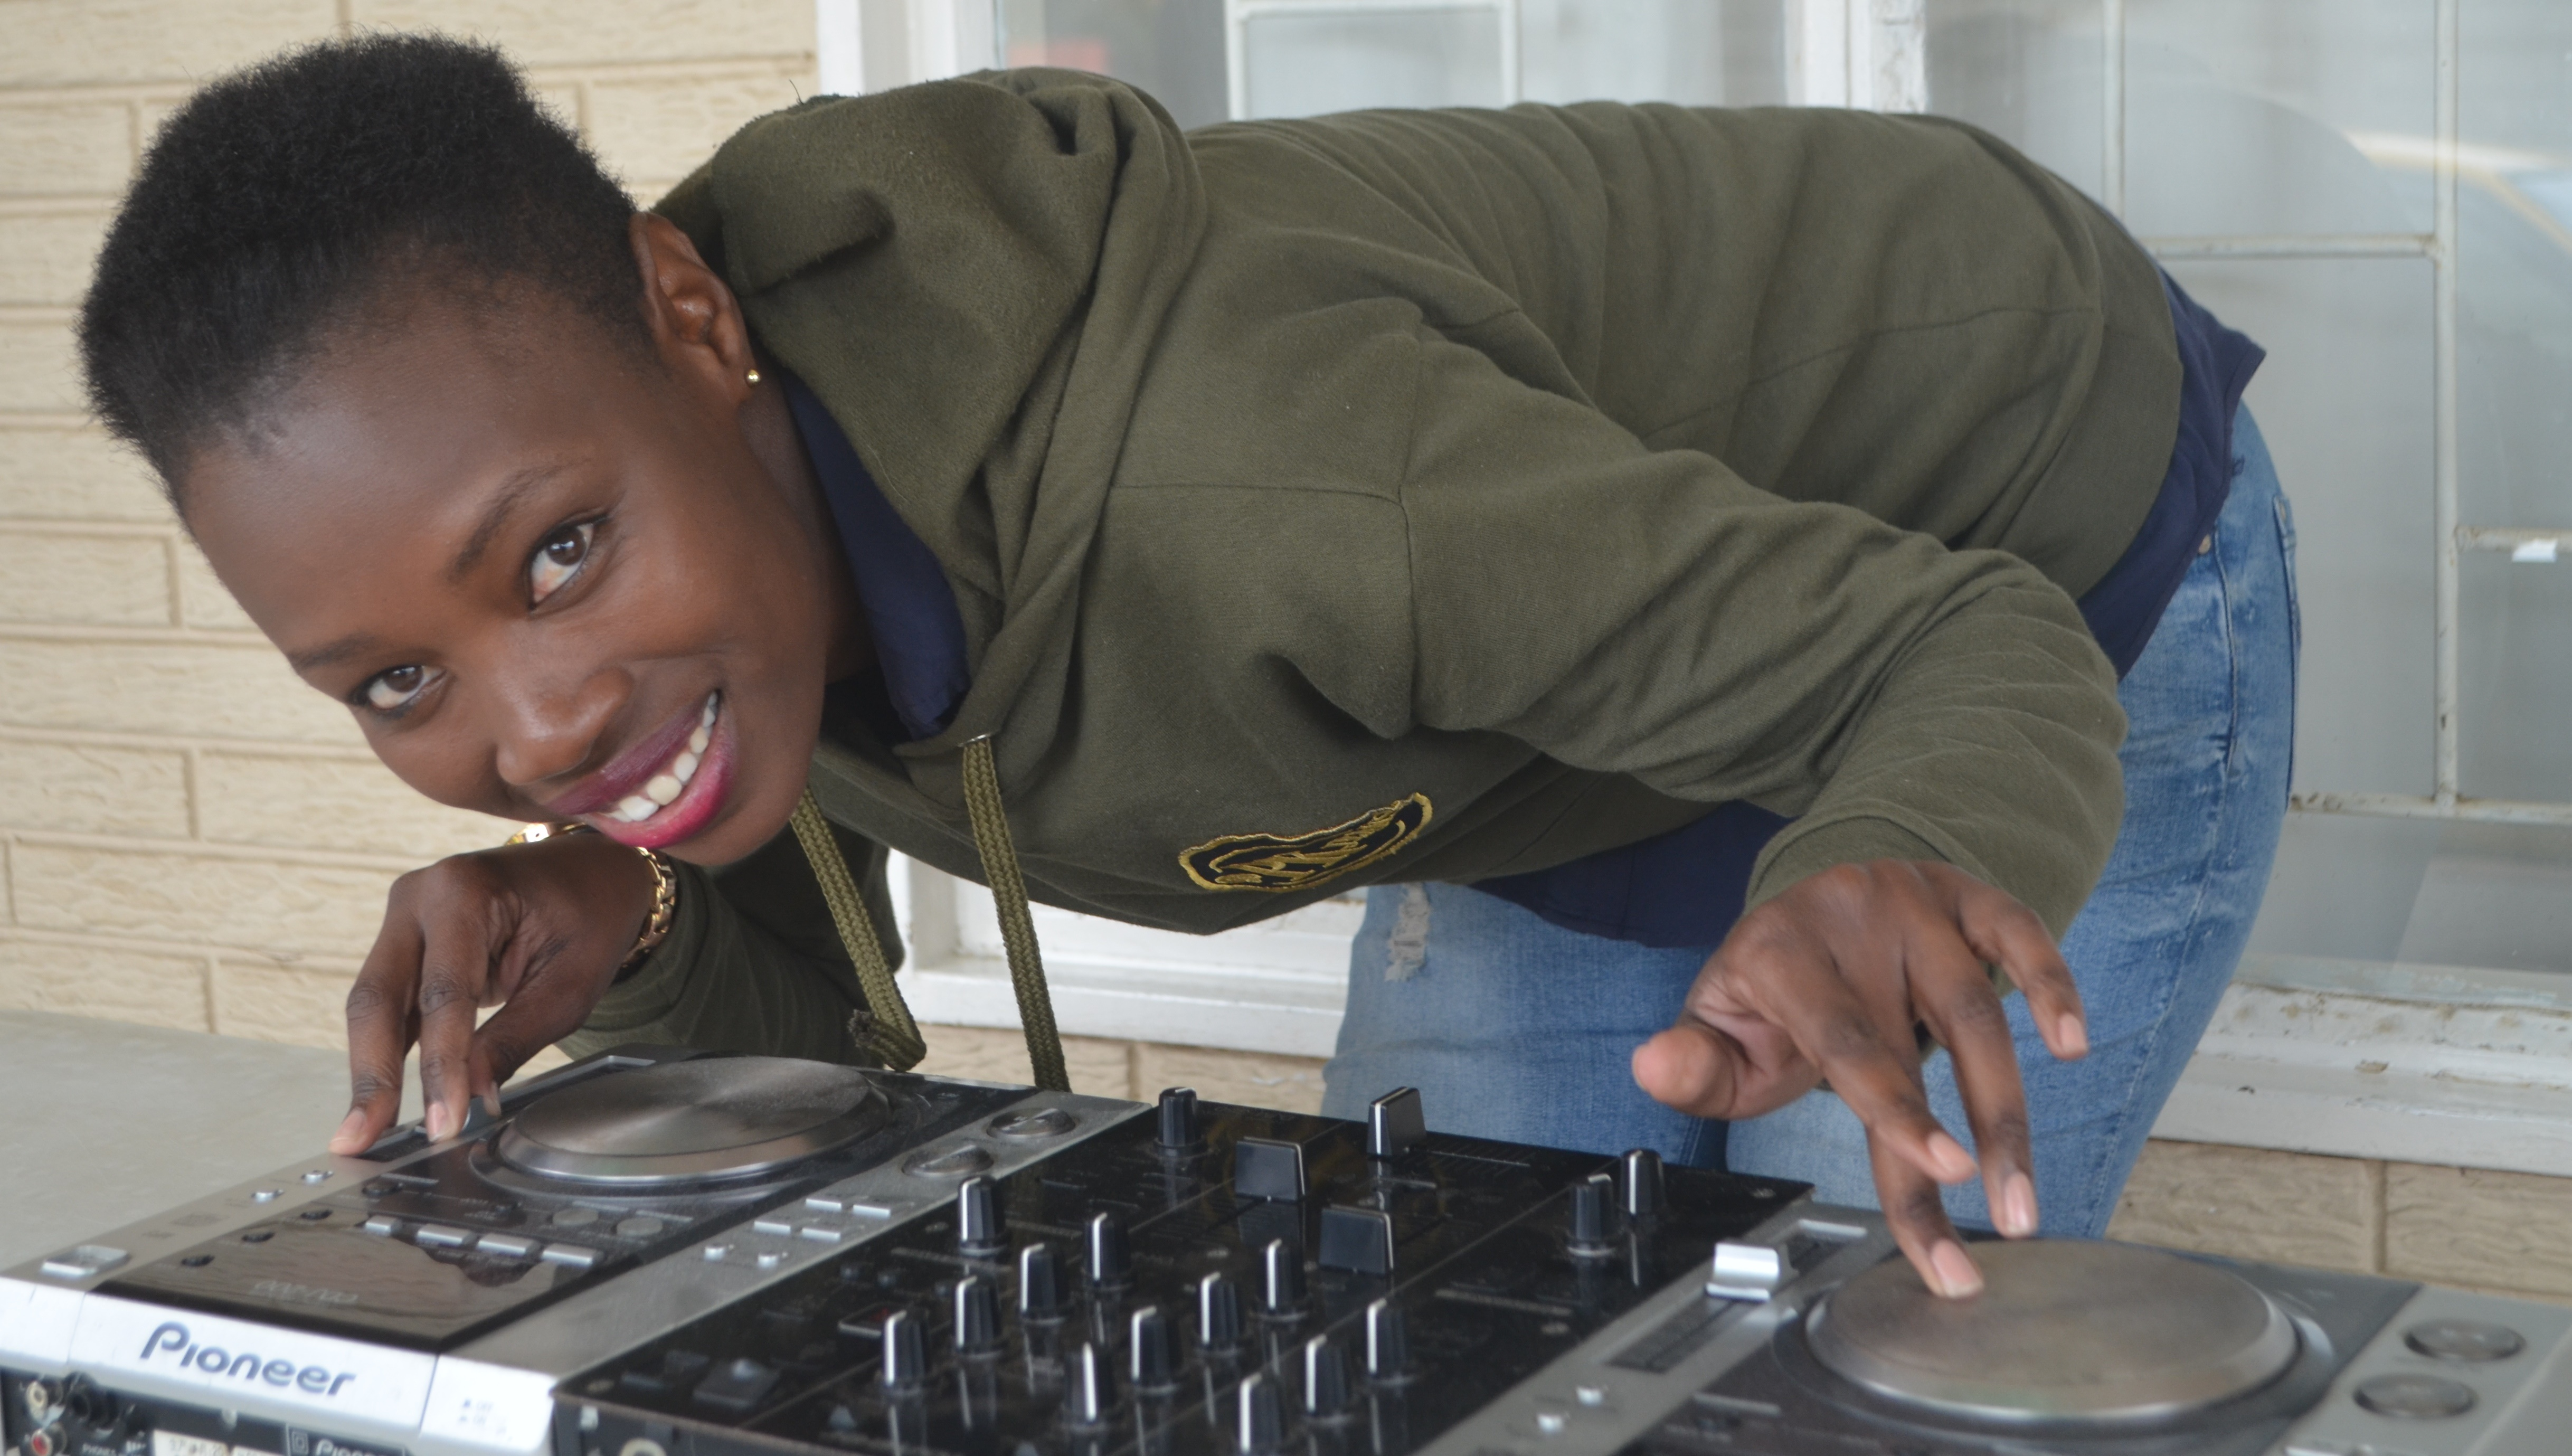 Local female DJ in quest to shake up the industry